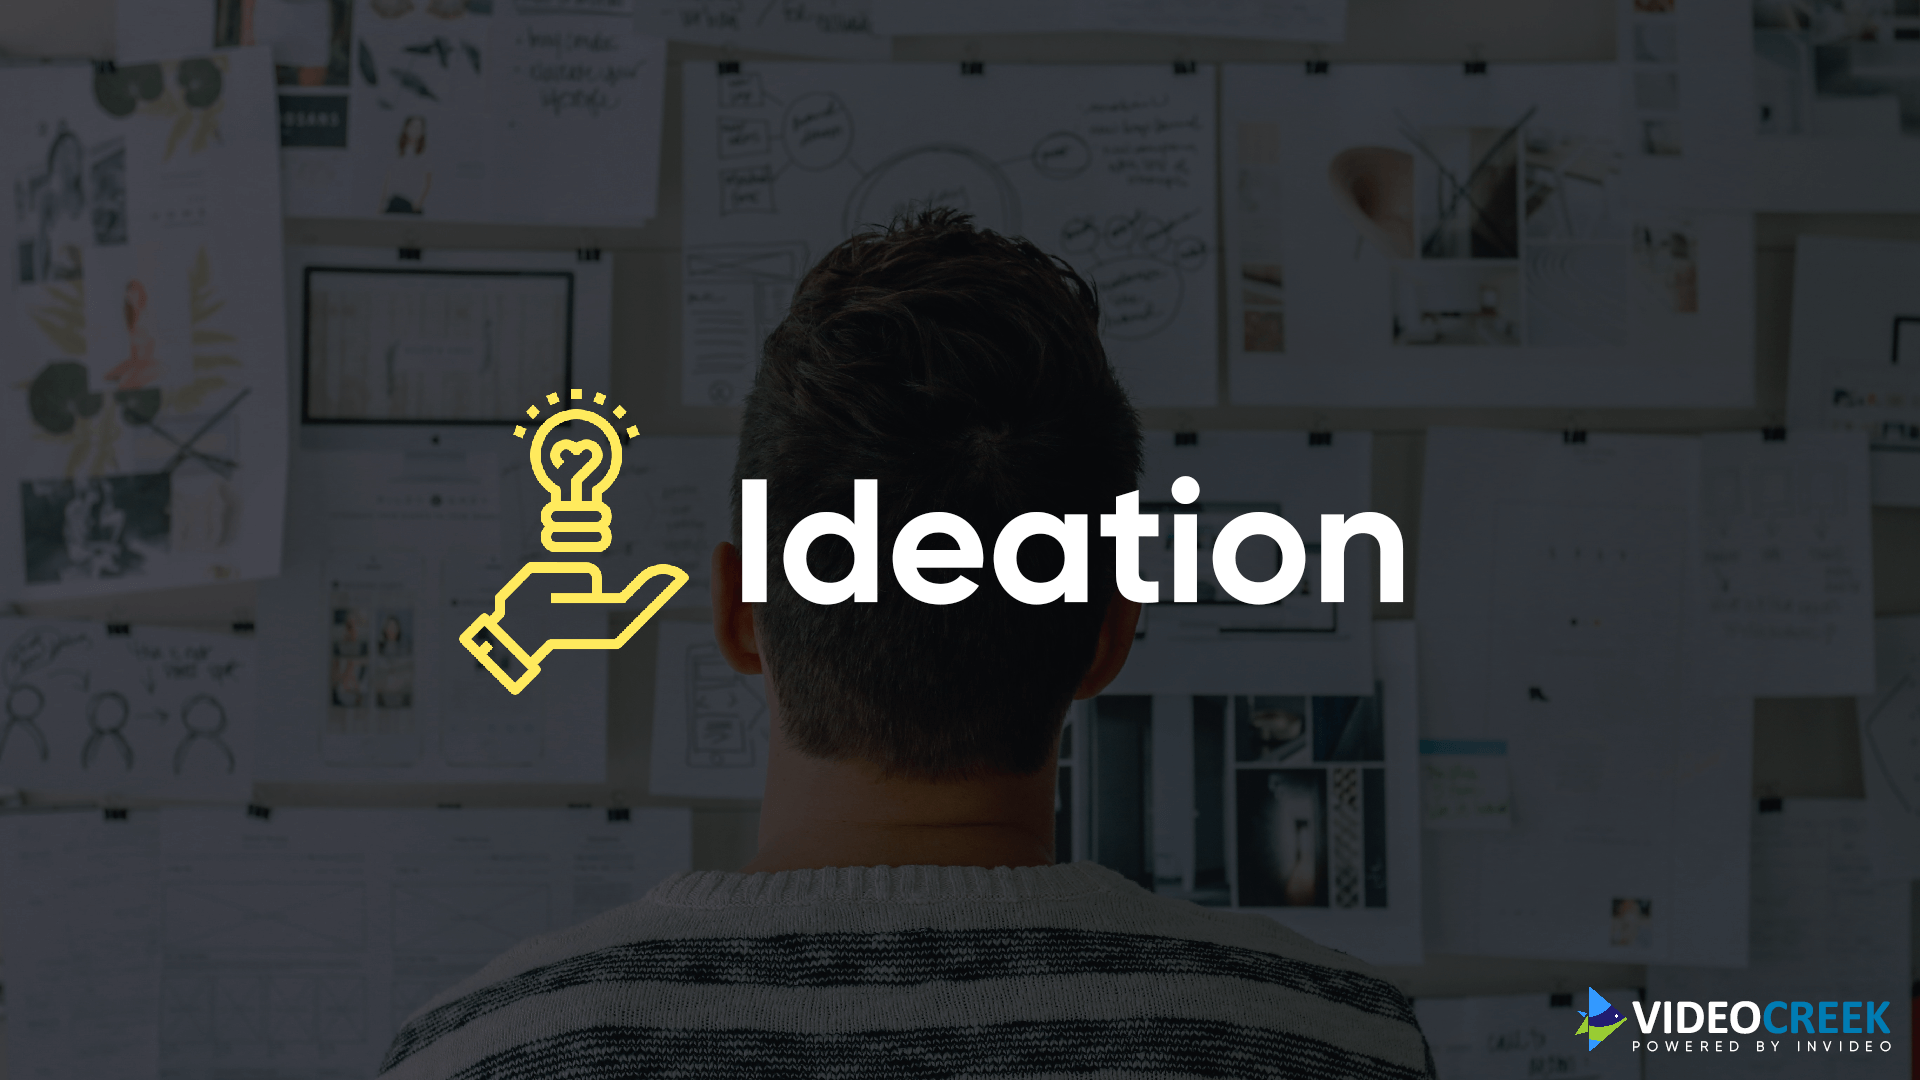 YouTube video - Ideation